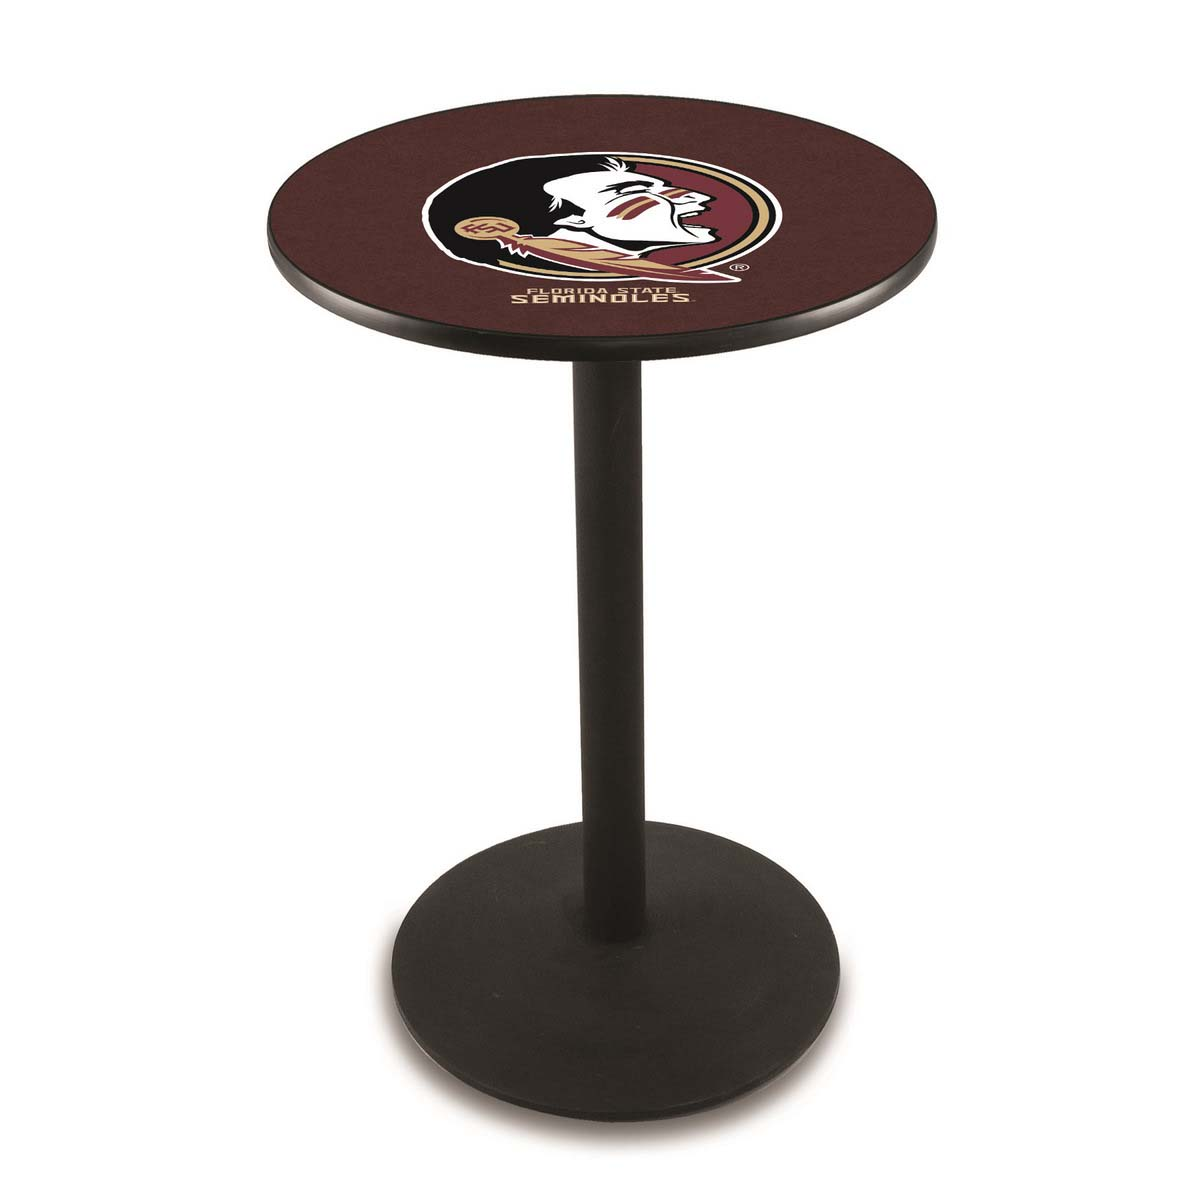 Popular Florida State Head Logo Pub Bar Table Round Stand Product Photo